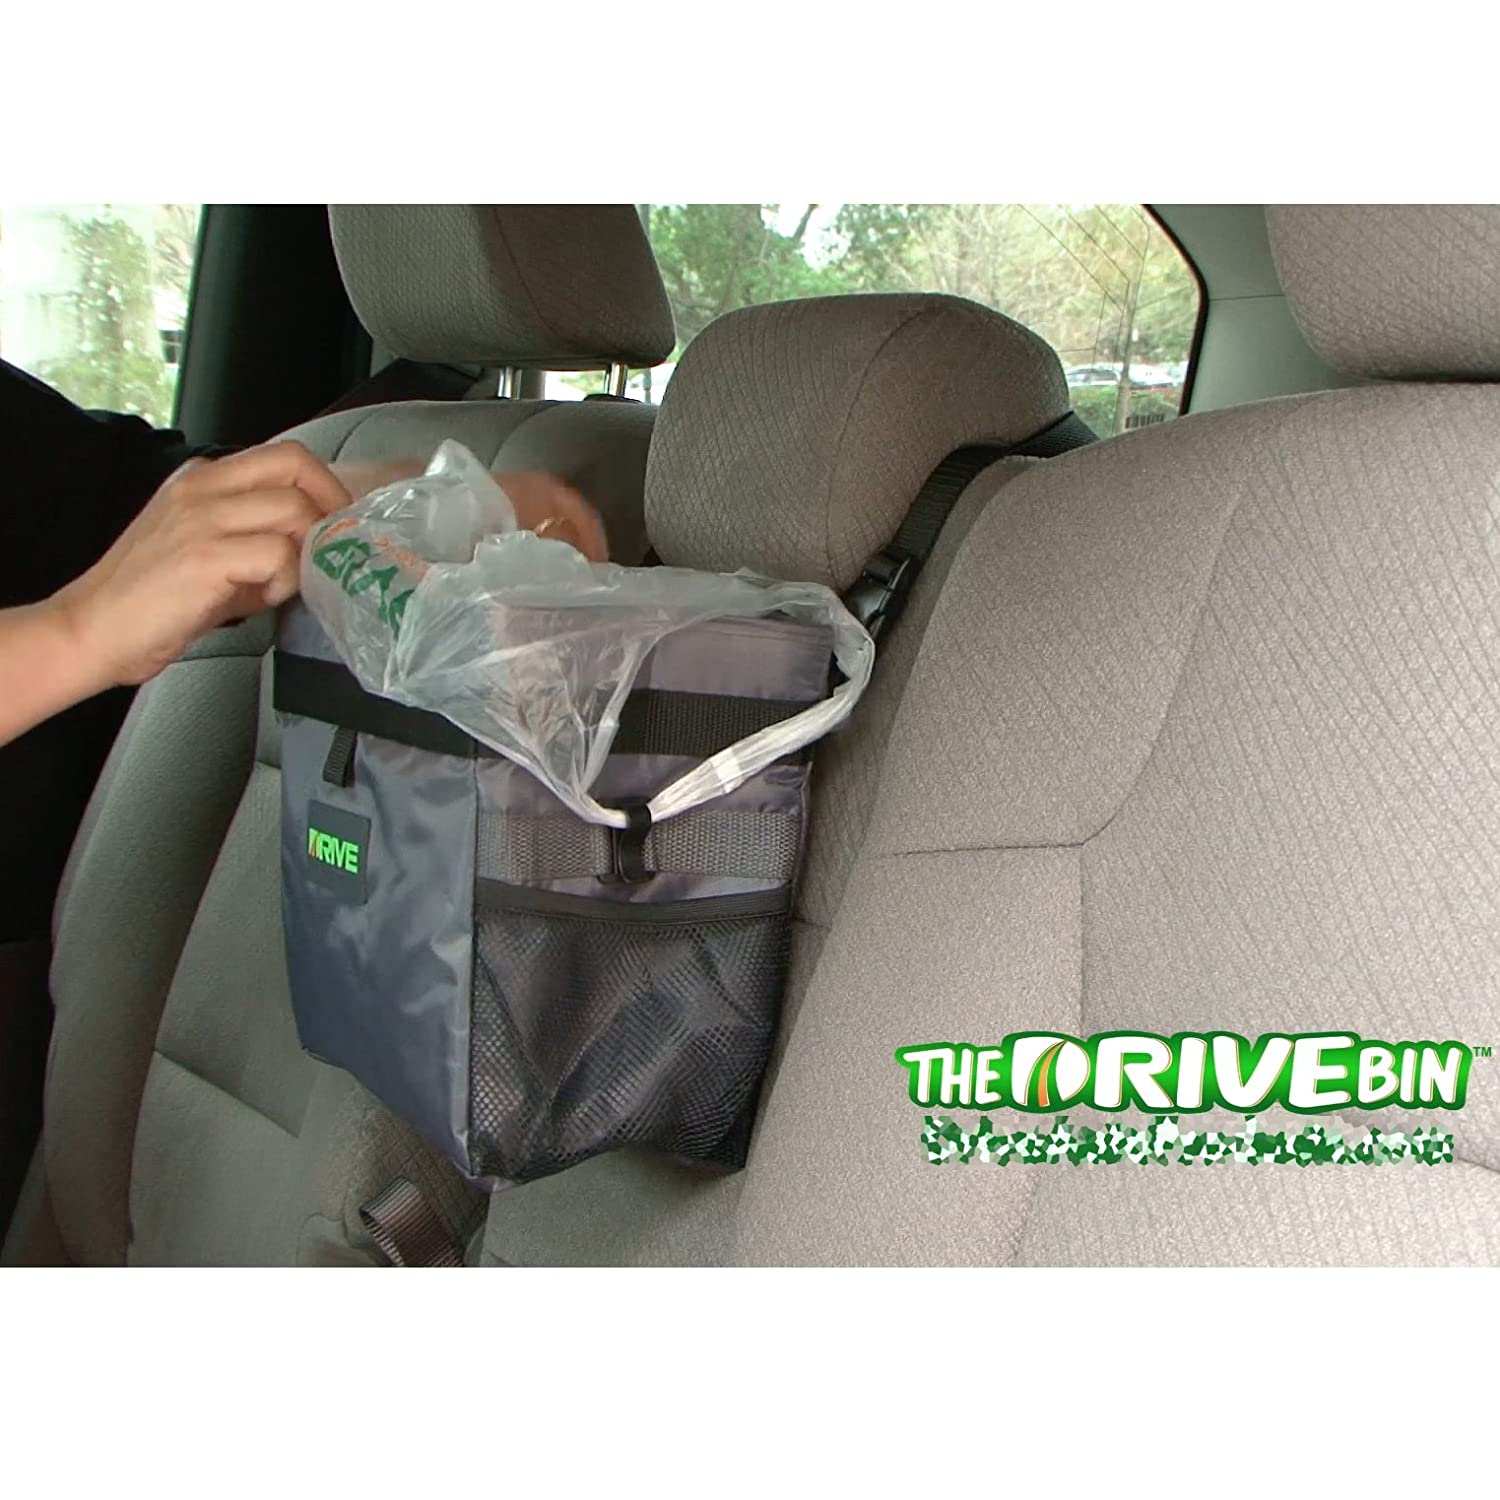 Car Garbage Can - The Drive Bin As Seen On TV Collection by Drive Auto Products 40-Pack Liner Refills